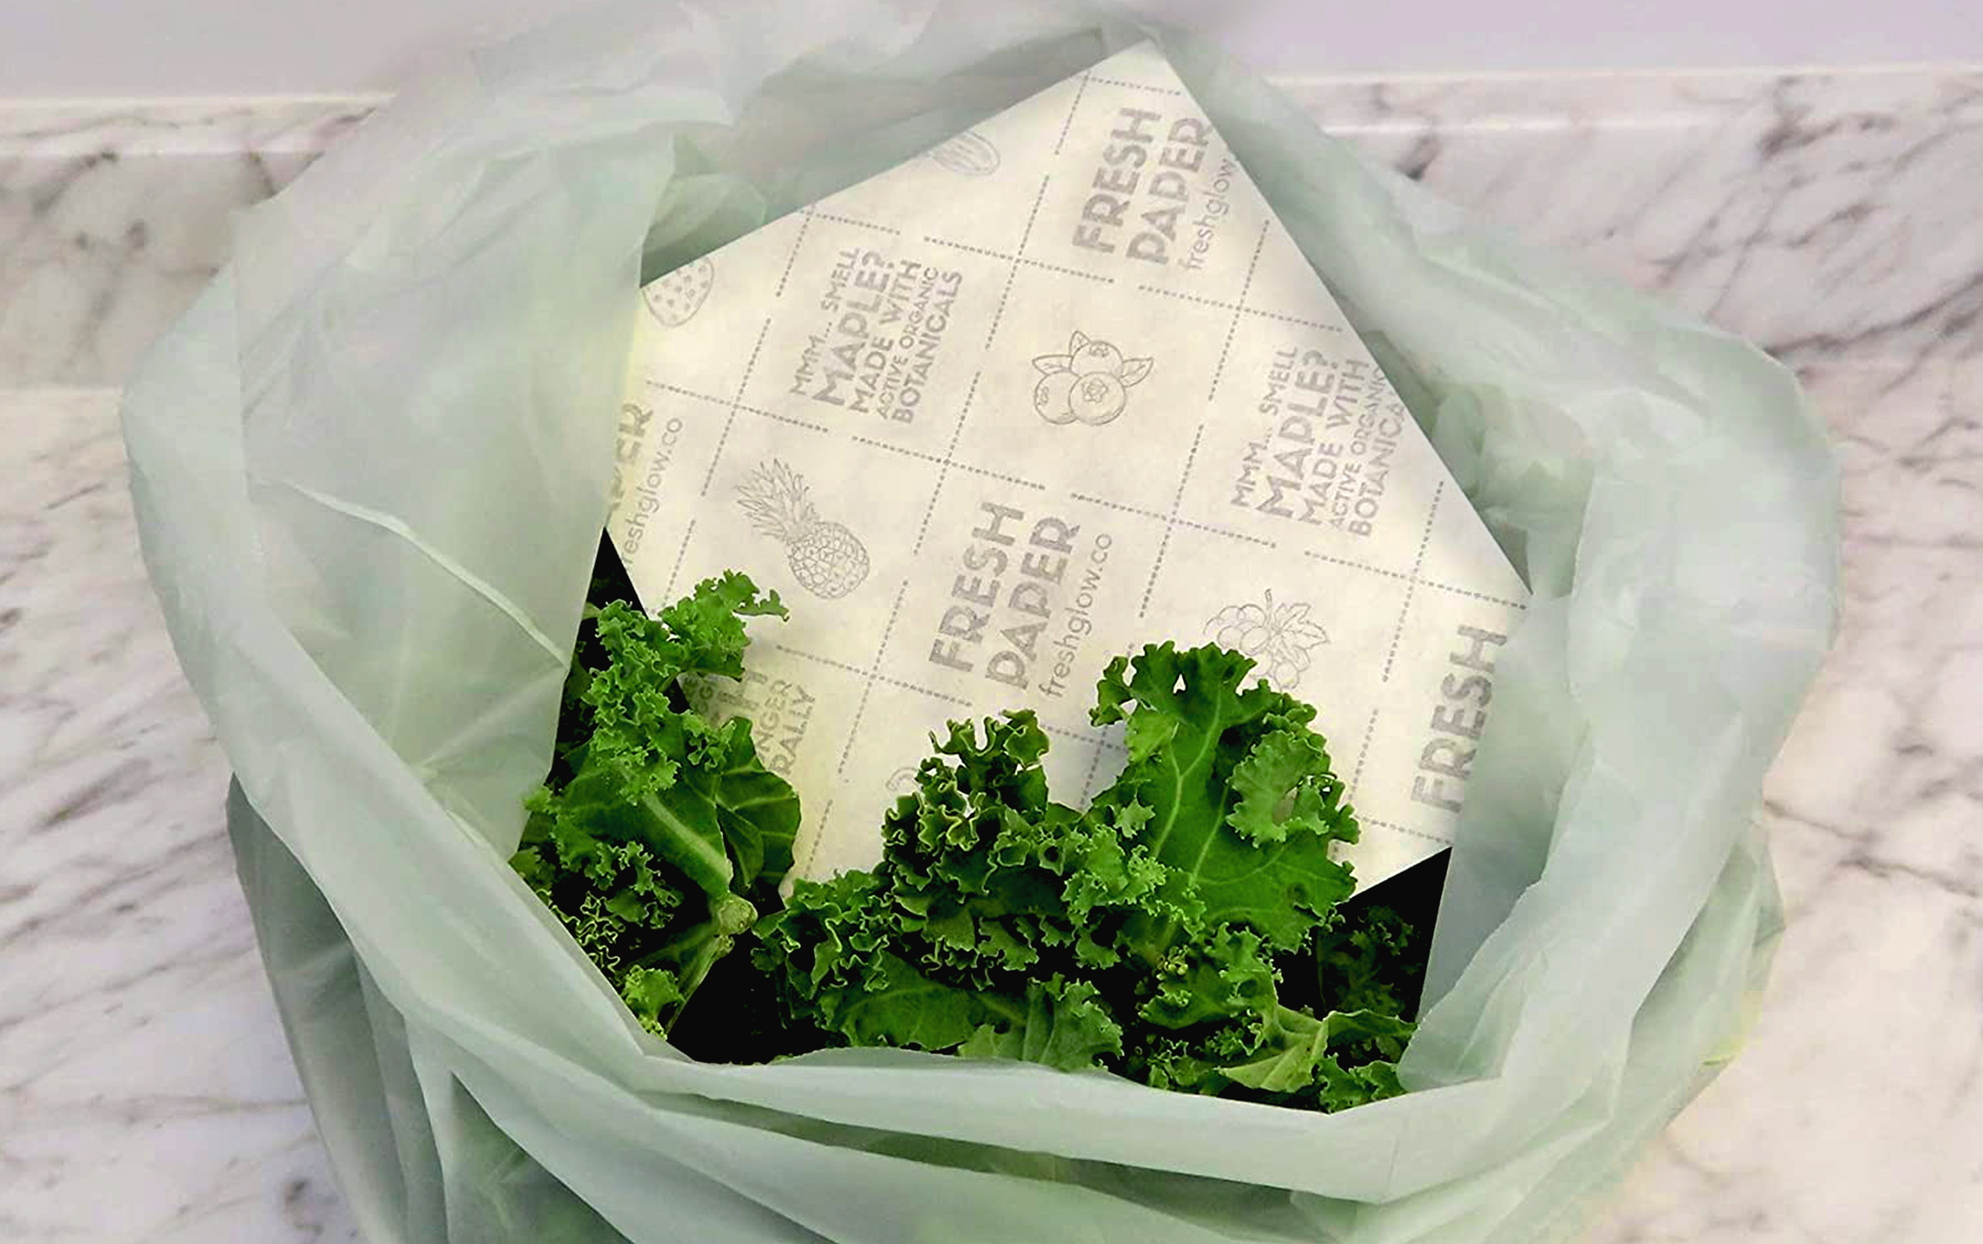 FRESHPAPER Food Saver Sheets in a bag with lettuce